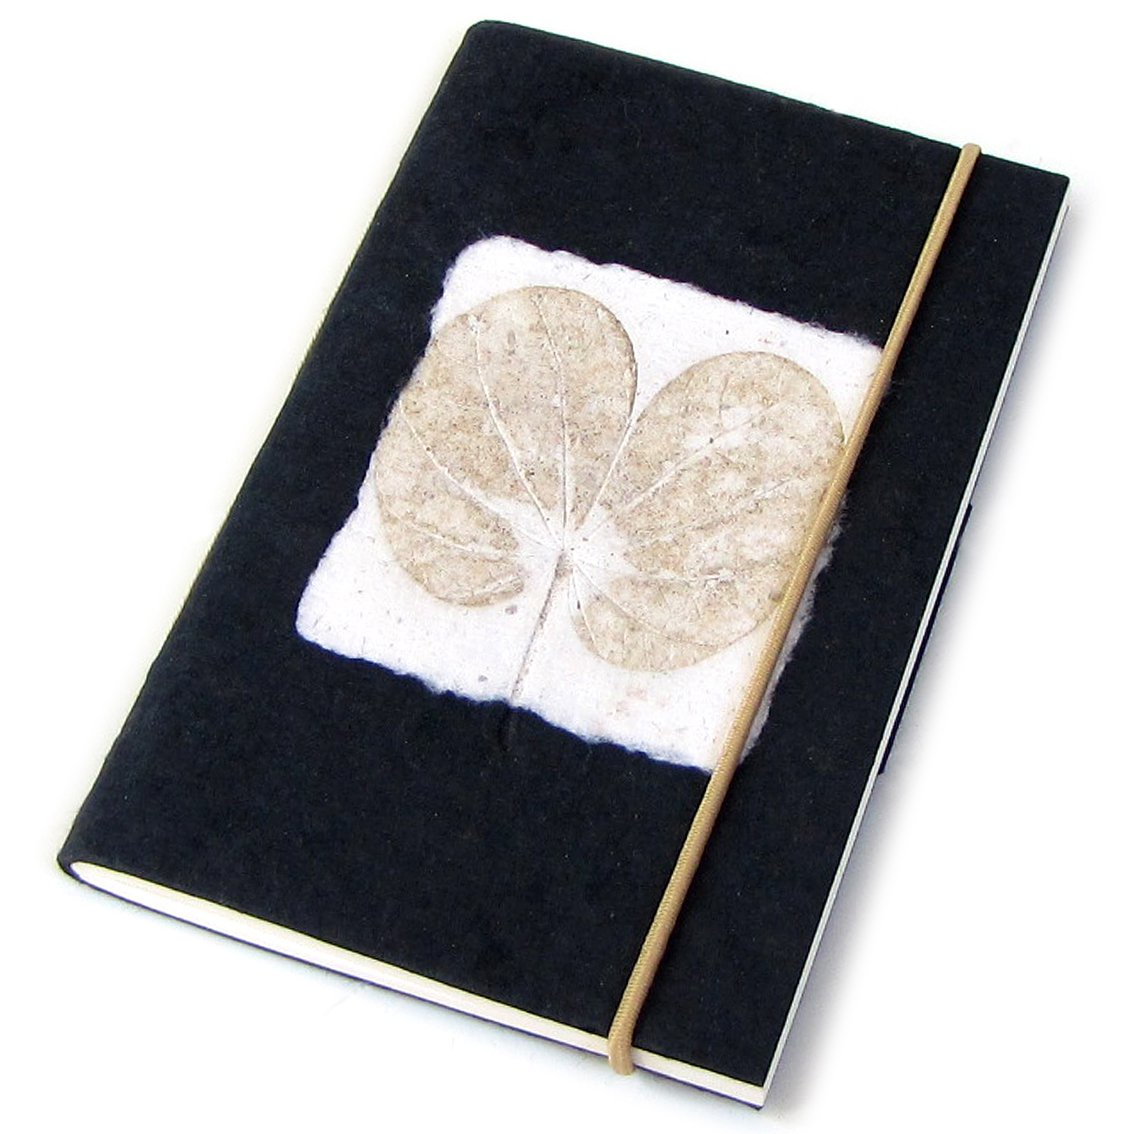 Notebook journal handmade recycled black heart leaf imprint paper crafts blank memo pad 3x5 40pp